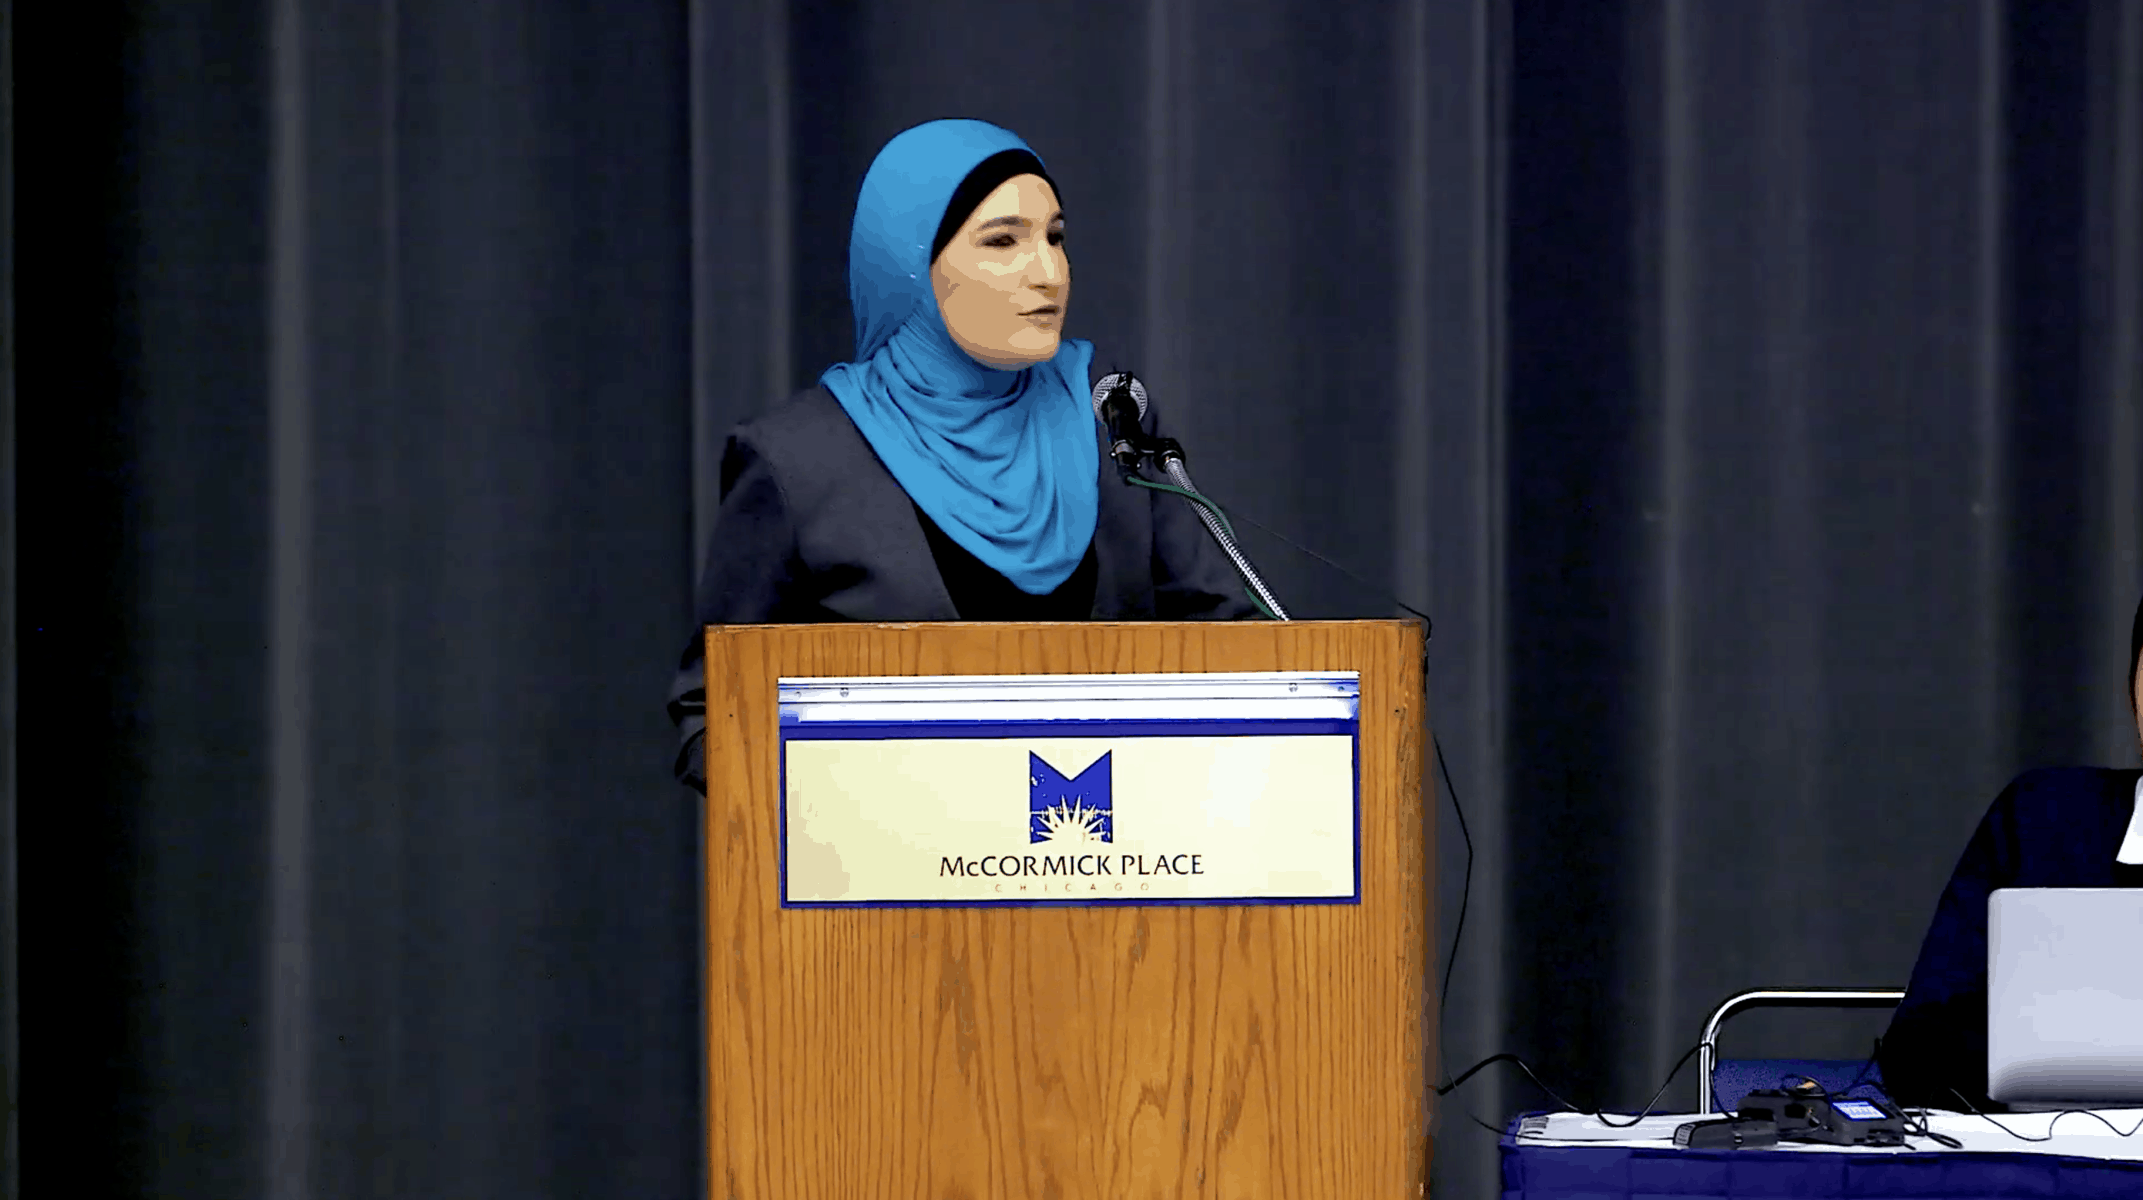 Linda Sarsour – Hide or Seek